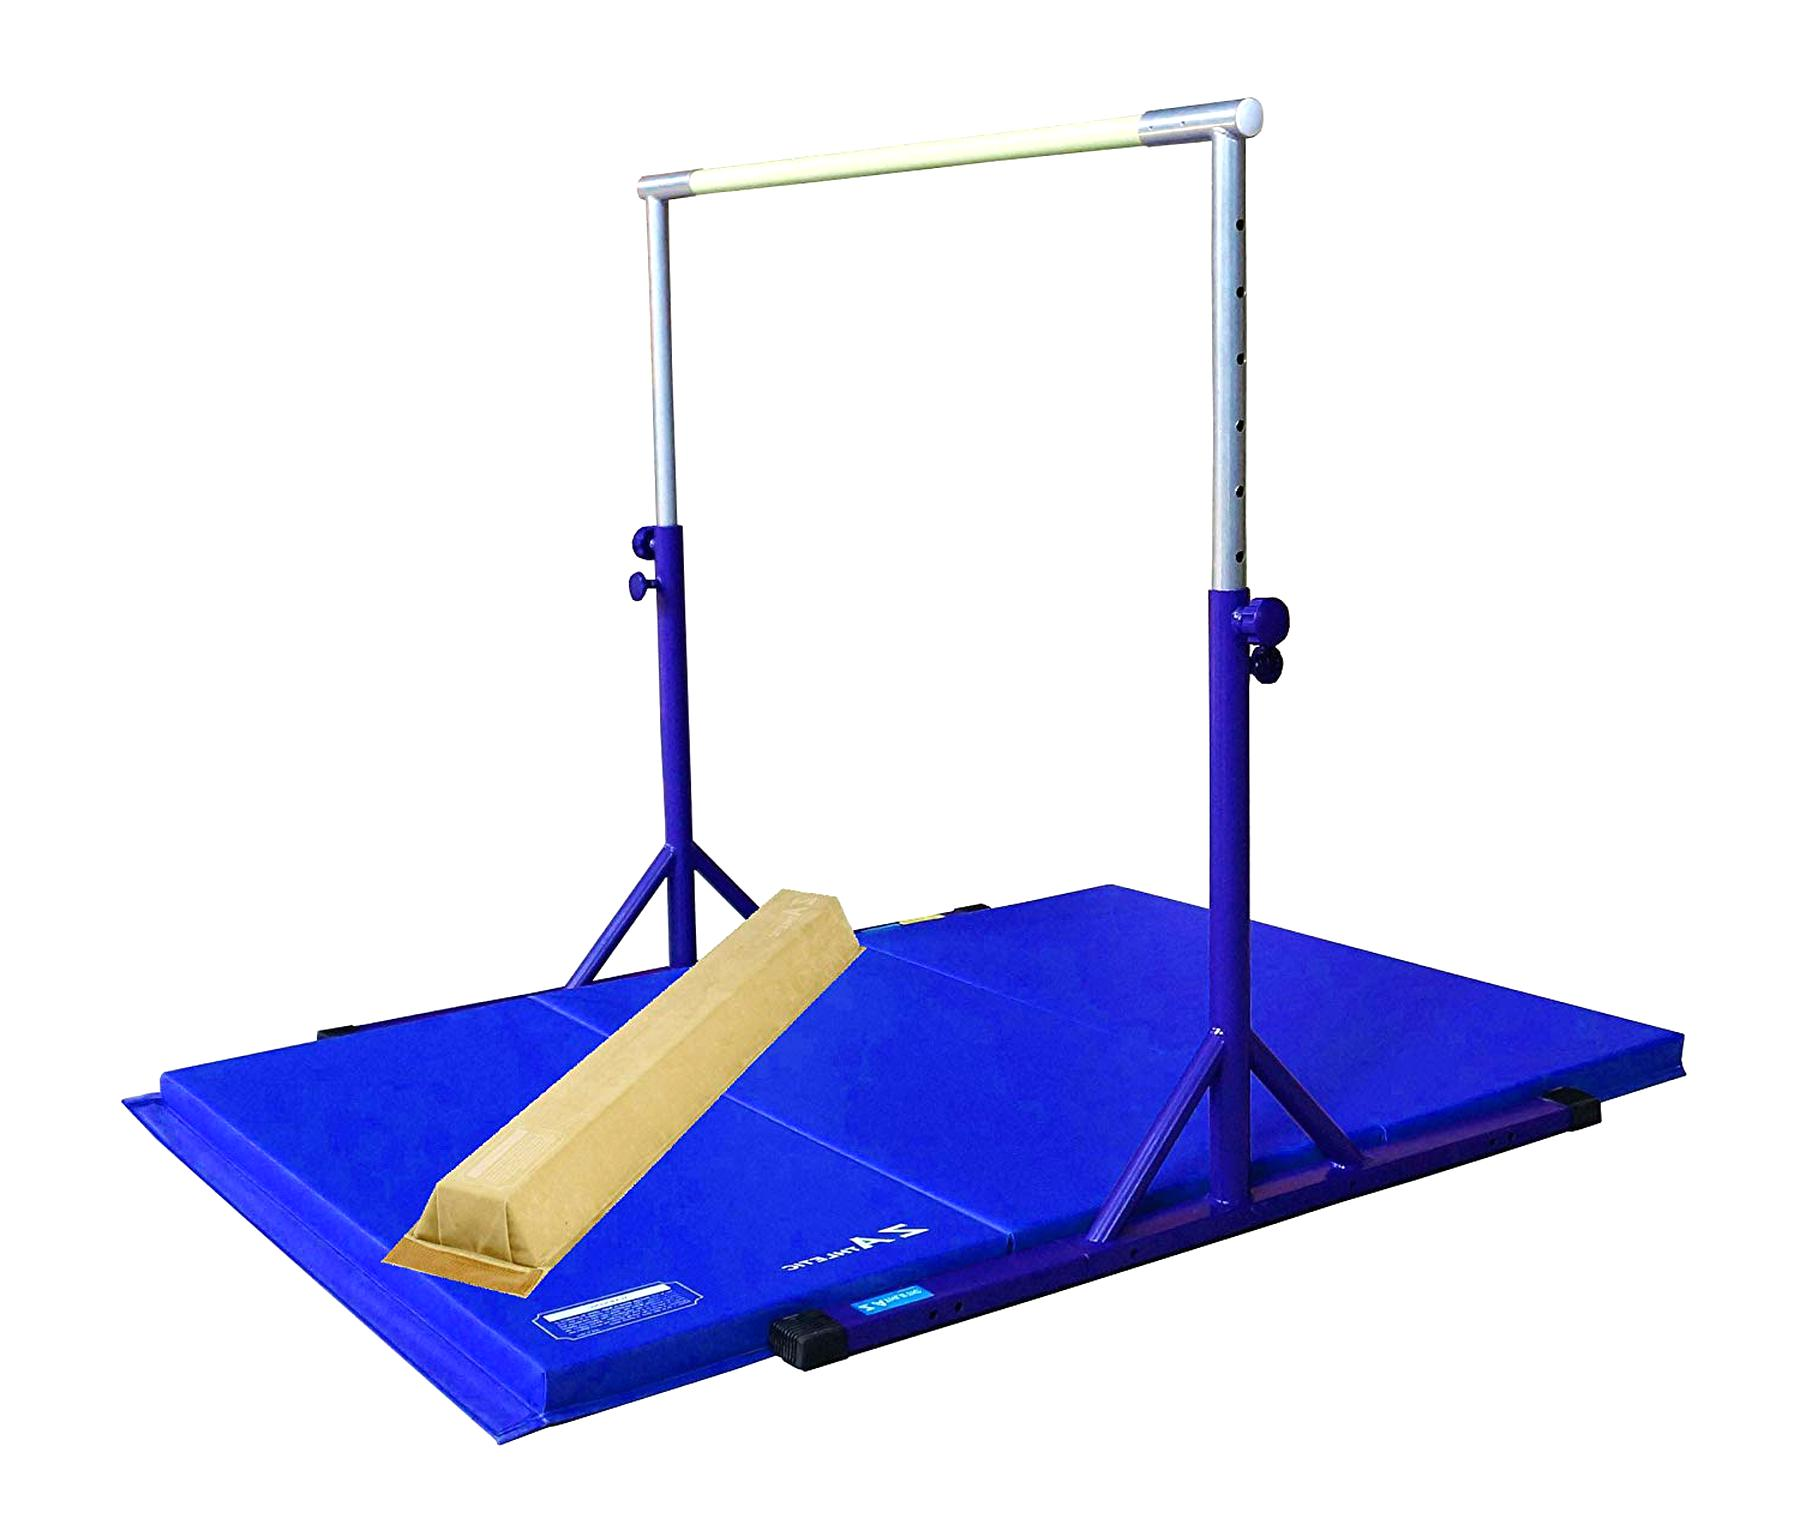 Gymnastics Equipment For Sale >> Gymnastics Equipment For Sale Only 3 Left At 75